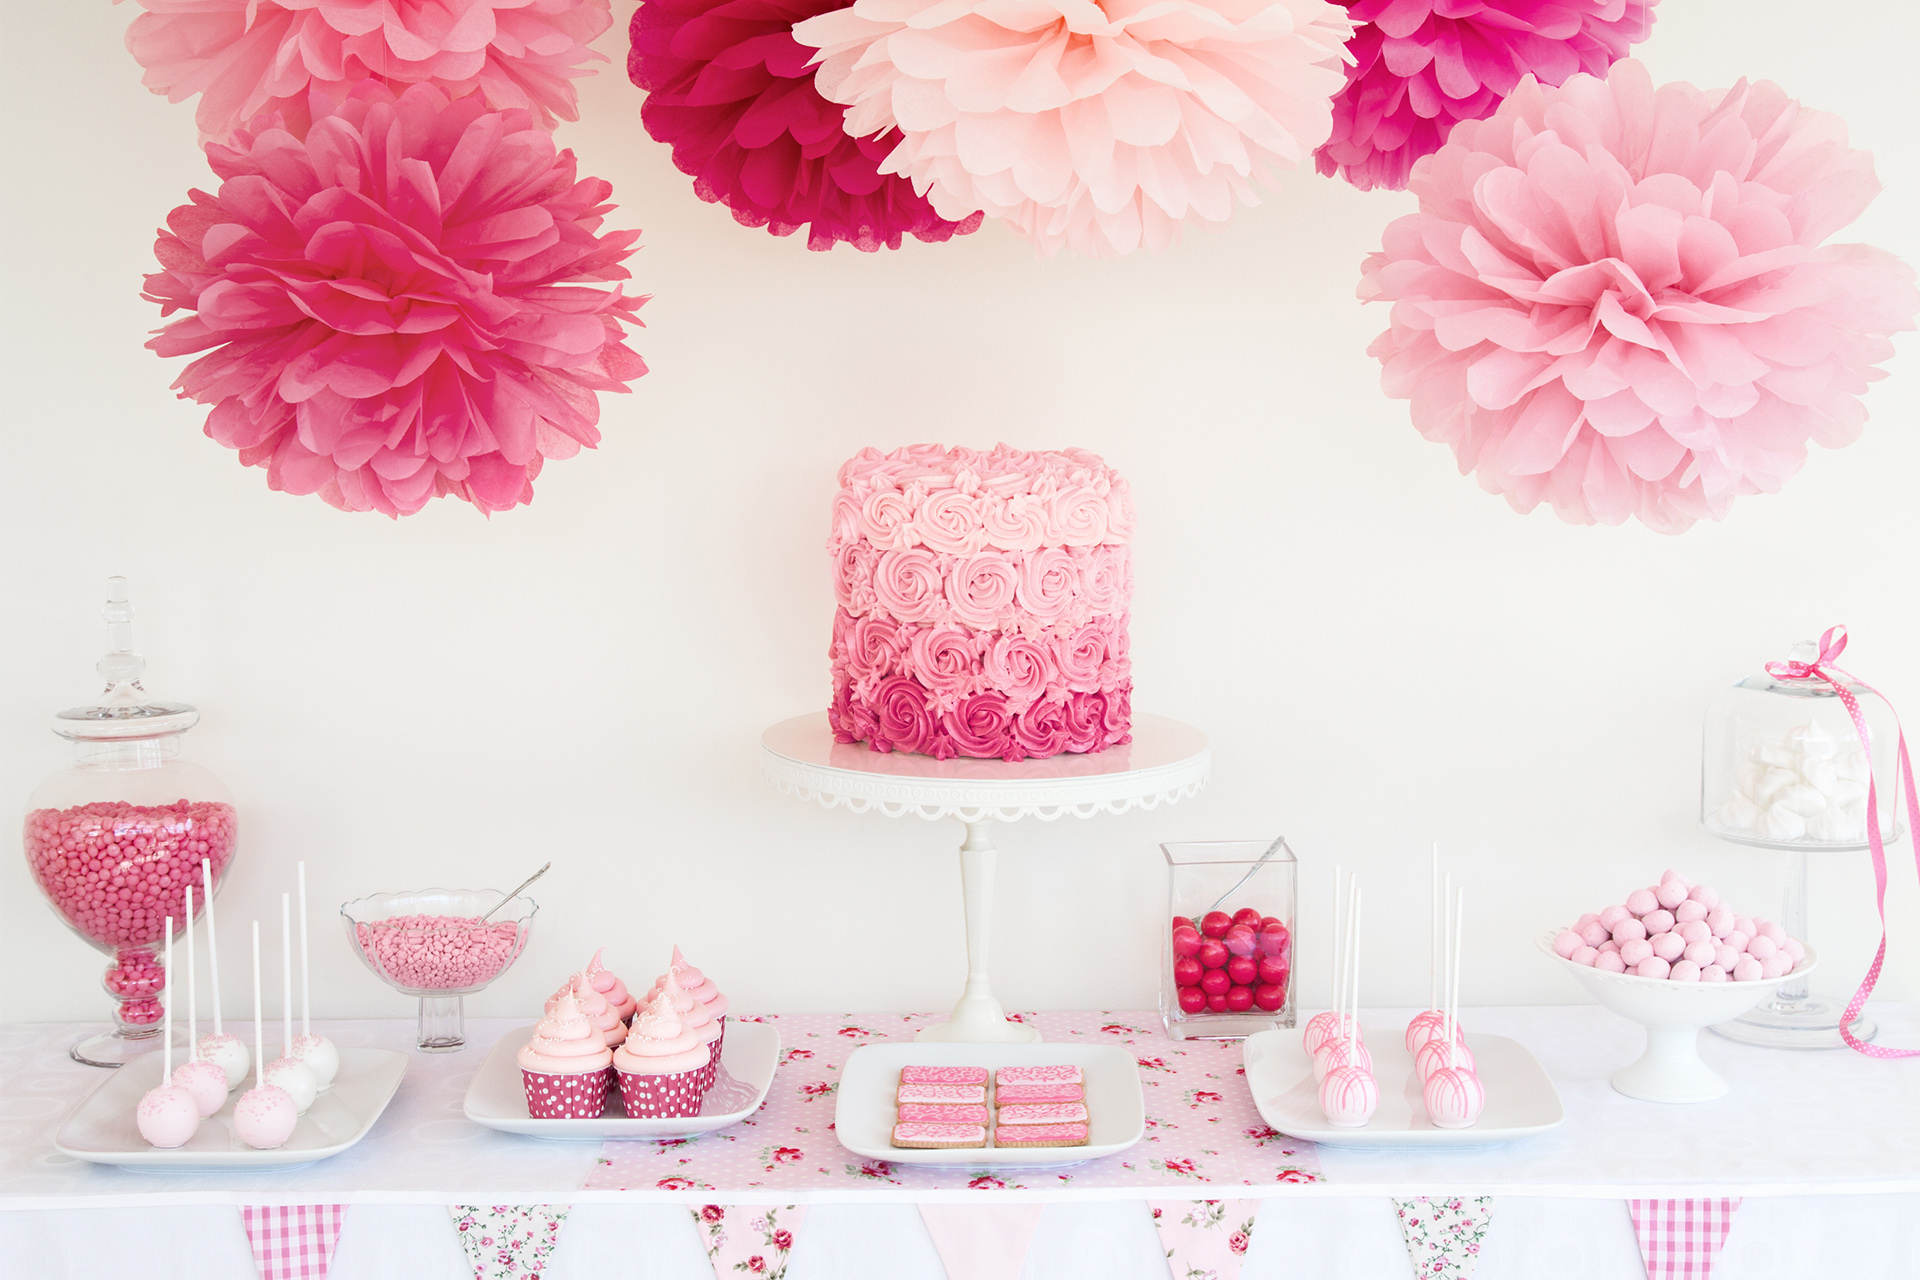 10 last minute bridal shower decoration ideas